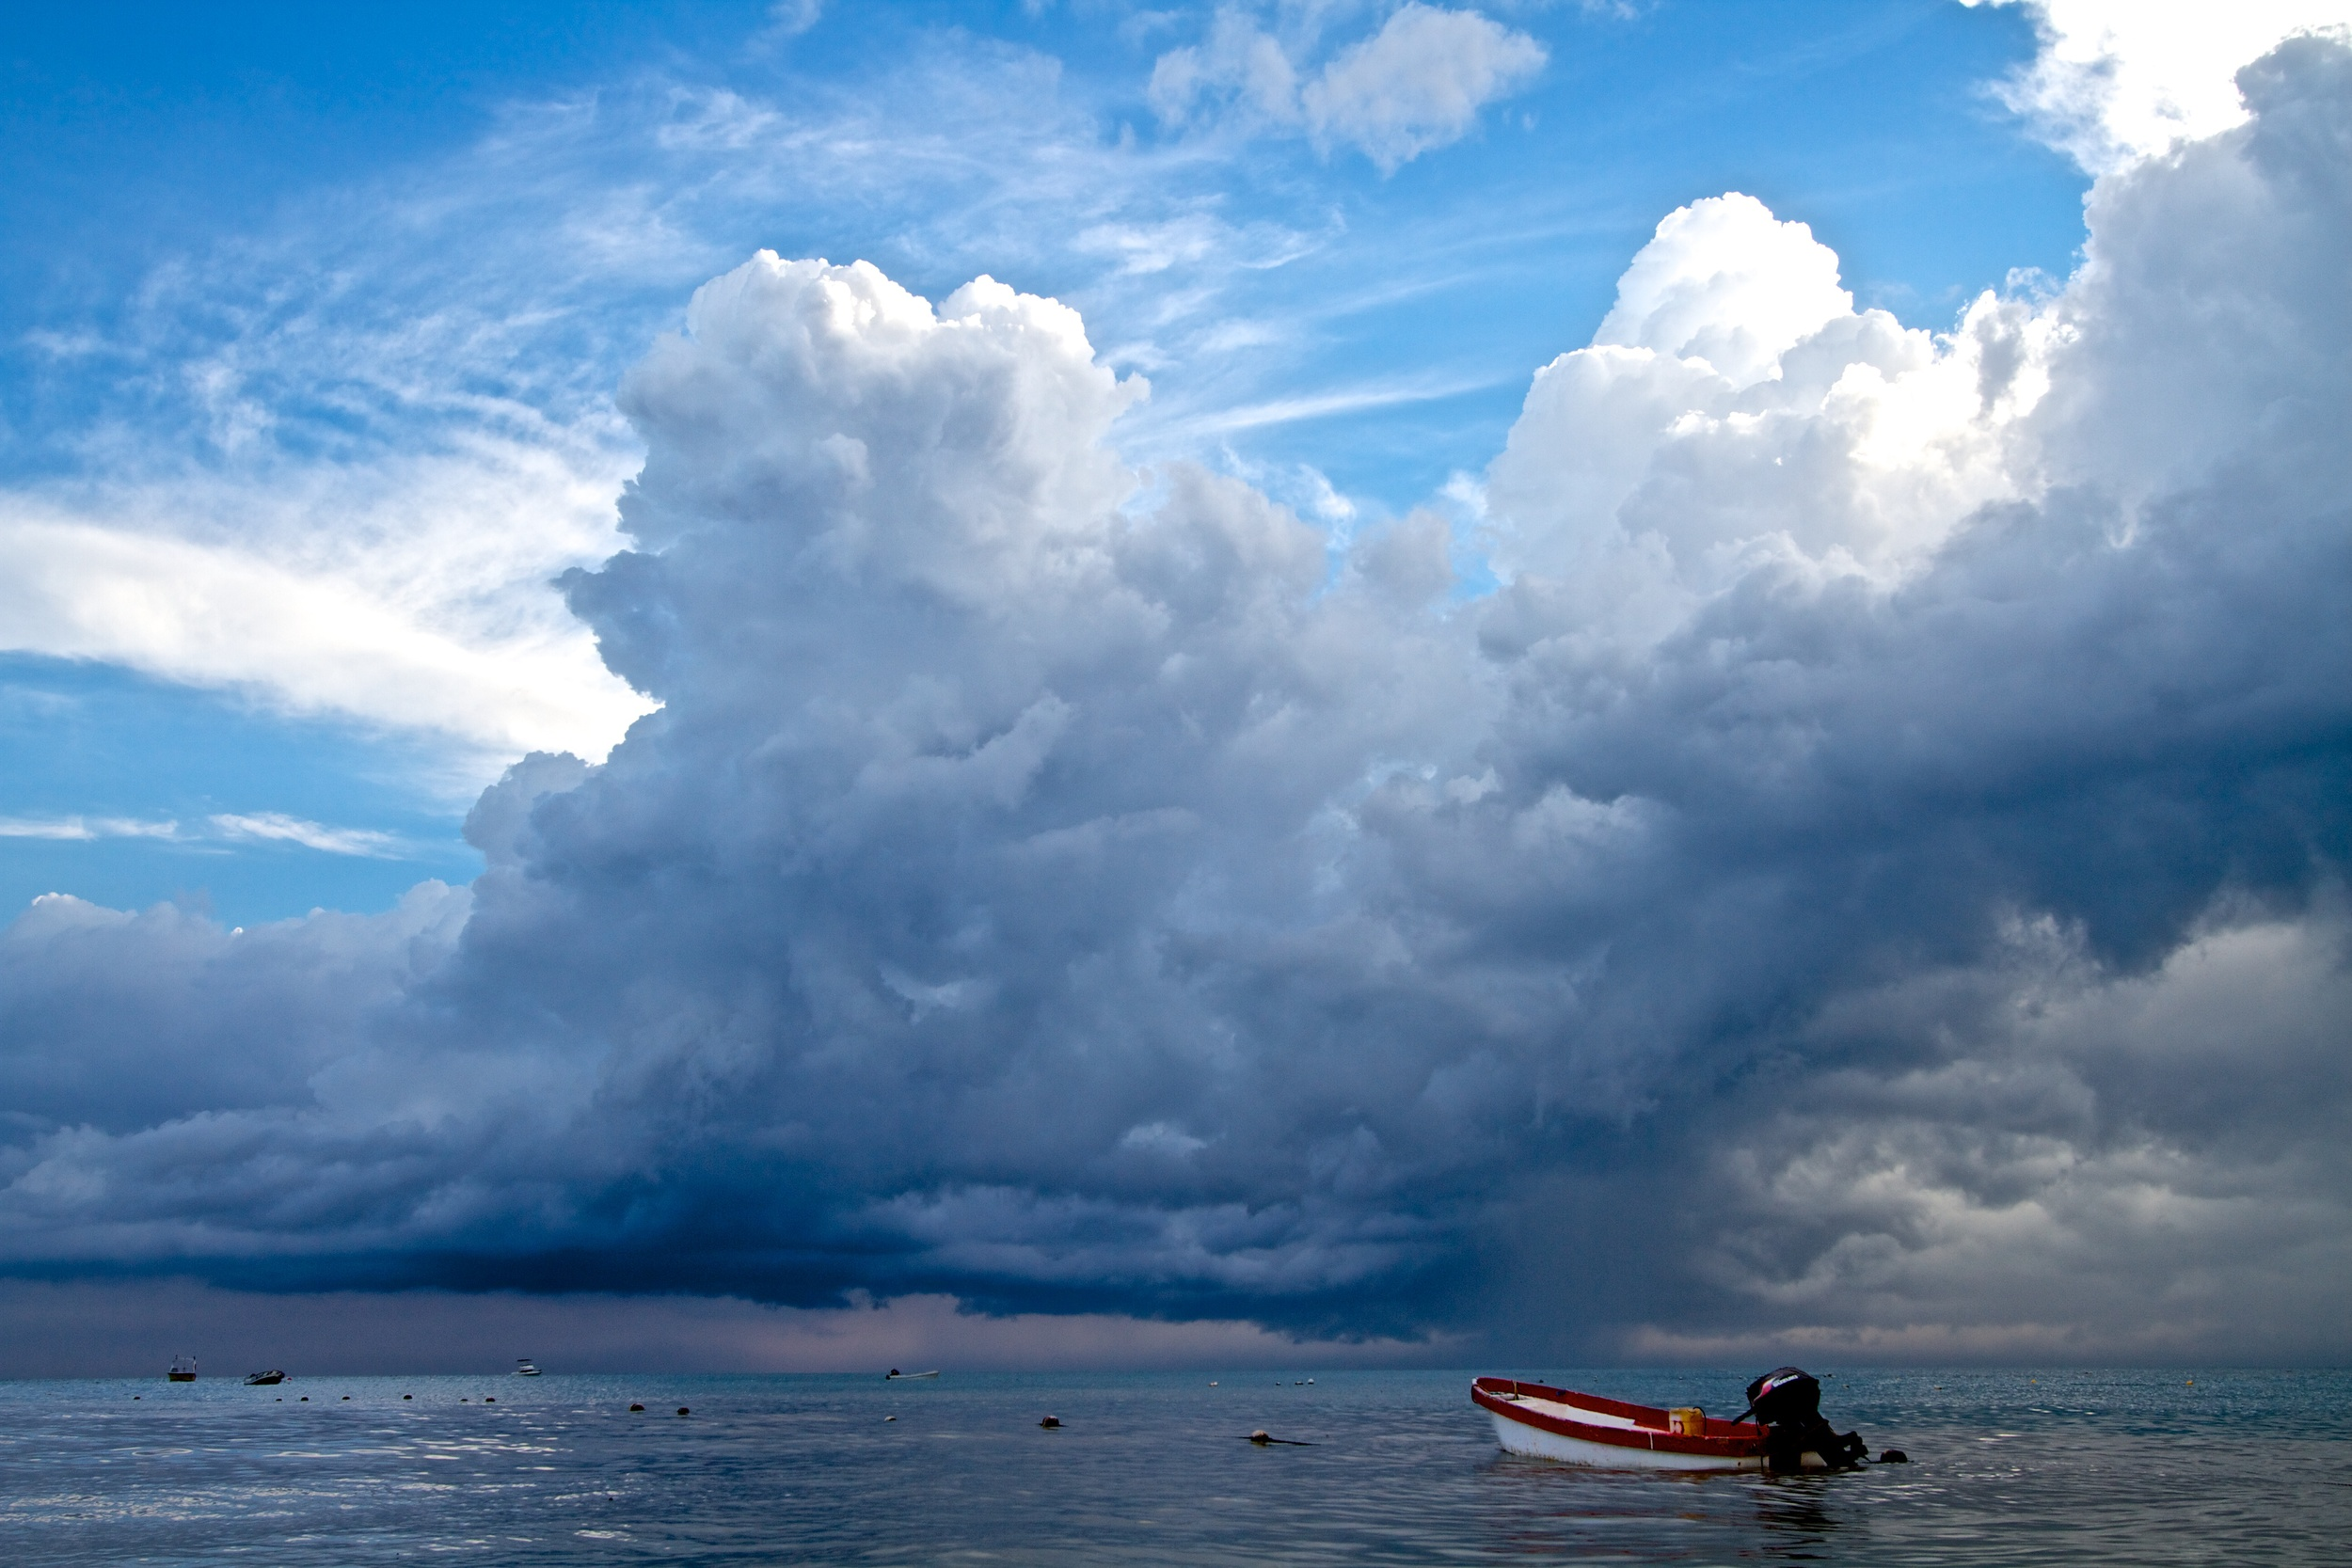 2012-12-27 at 15-04-59 Boats, Seascape, Water, Clouds, Sky, Dramatic, Blue, Ocean, Storm.jpg